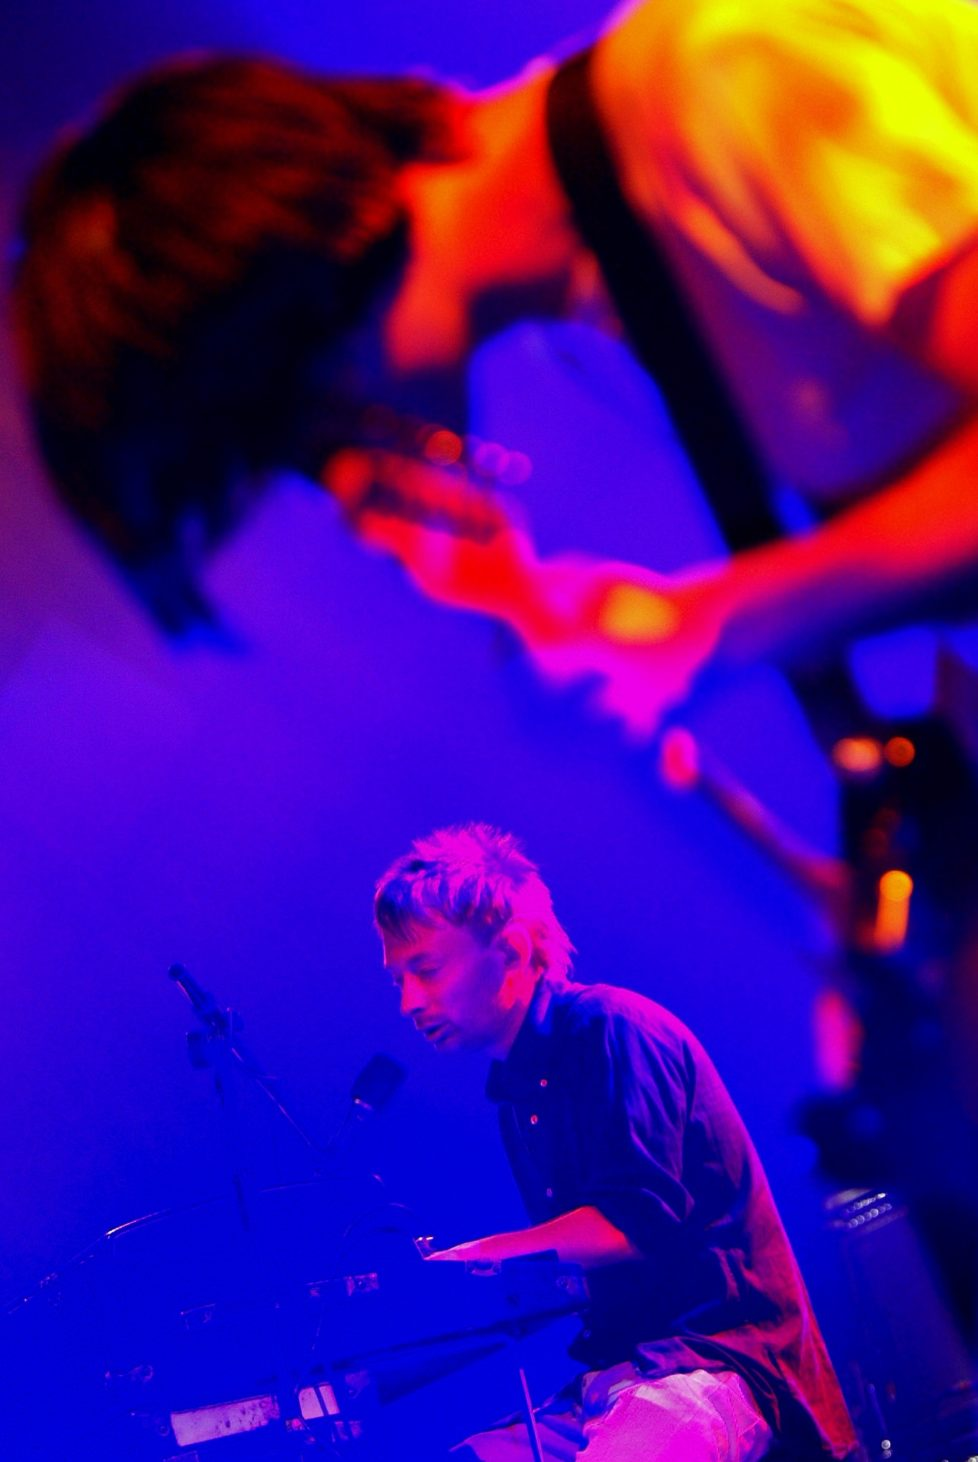 Thom Yorke, left, singer and Jonathan Greenwood, right, guitarist of british rock group Readiohead performs on Stravinsky stage, during the 37th Montreux Jazz Festival, in Montreux, Switzerland, Saturday, July 5, 2003. (KEYSTONE/Fabrice Coffrini)